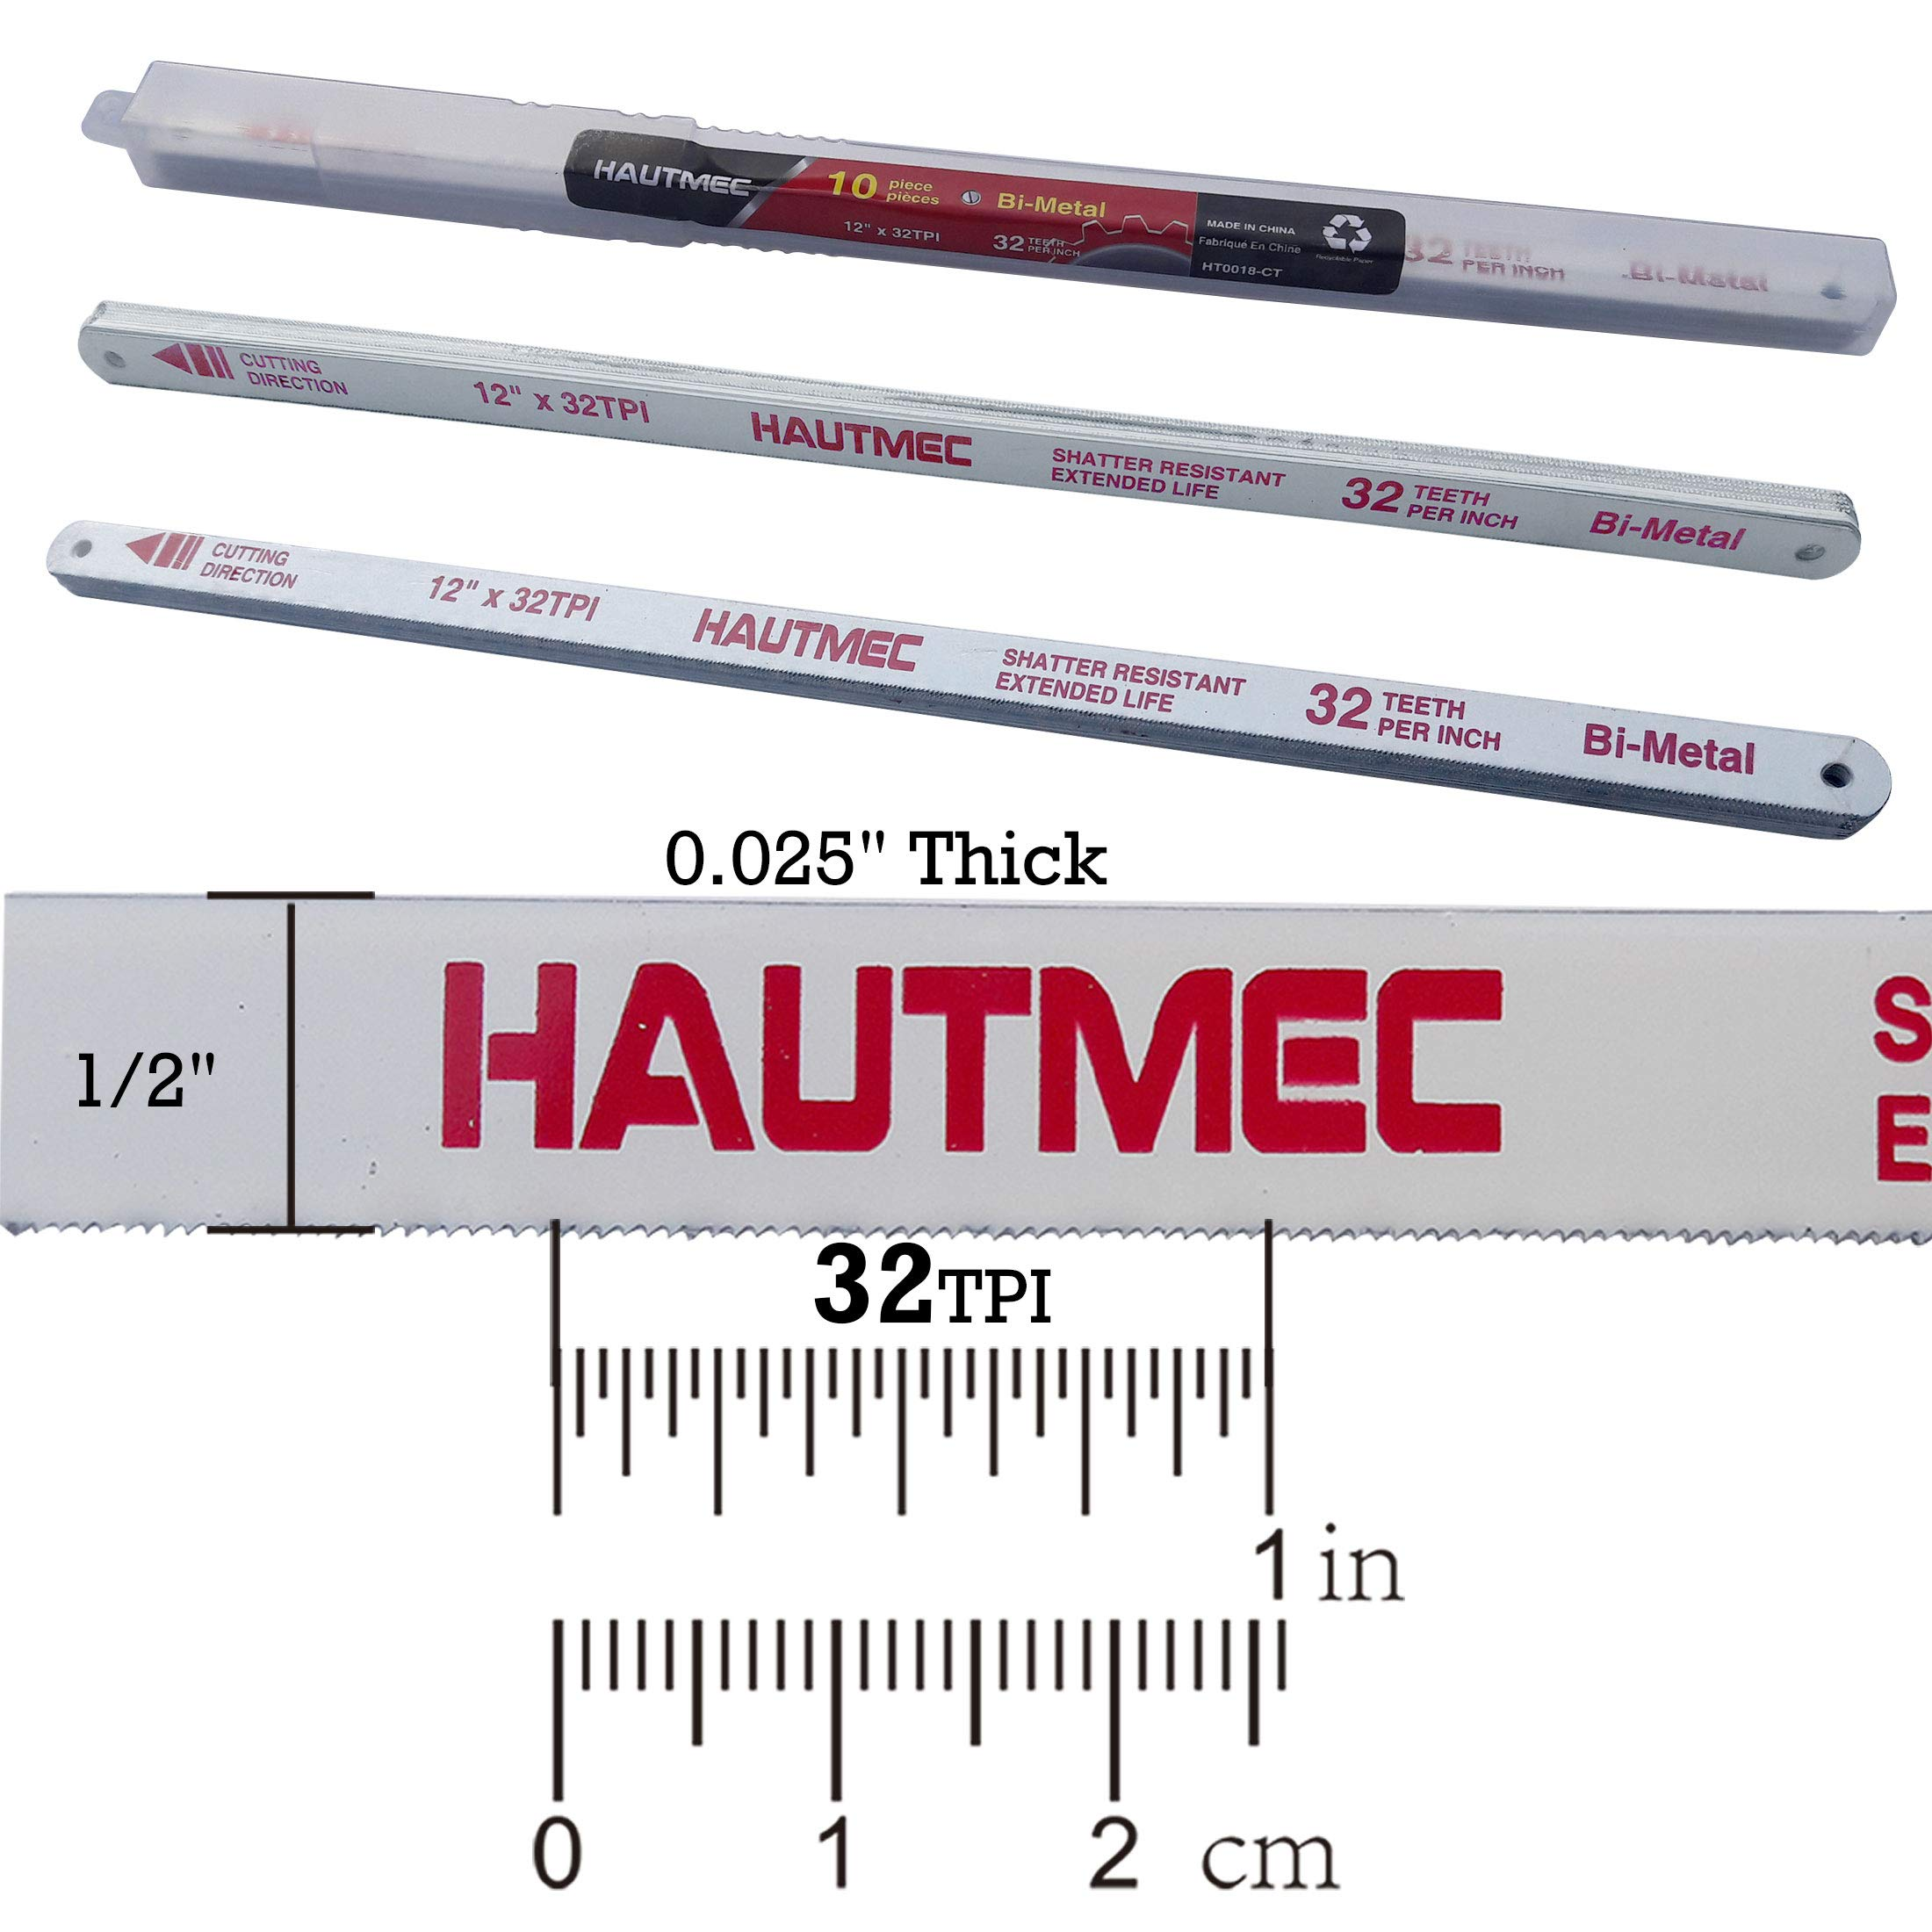 HAUTMEC Hacksaw Replacement Blades BI-METAL (10 Pack) High Speed Steel Grounded Teeth 32 TPI x 12'' Length 0.025'' Thick x 1/2'' Width HT0018-CT by HAUTMEC (Image #2)